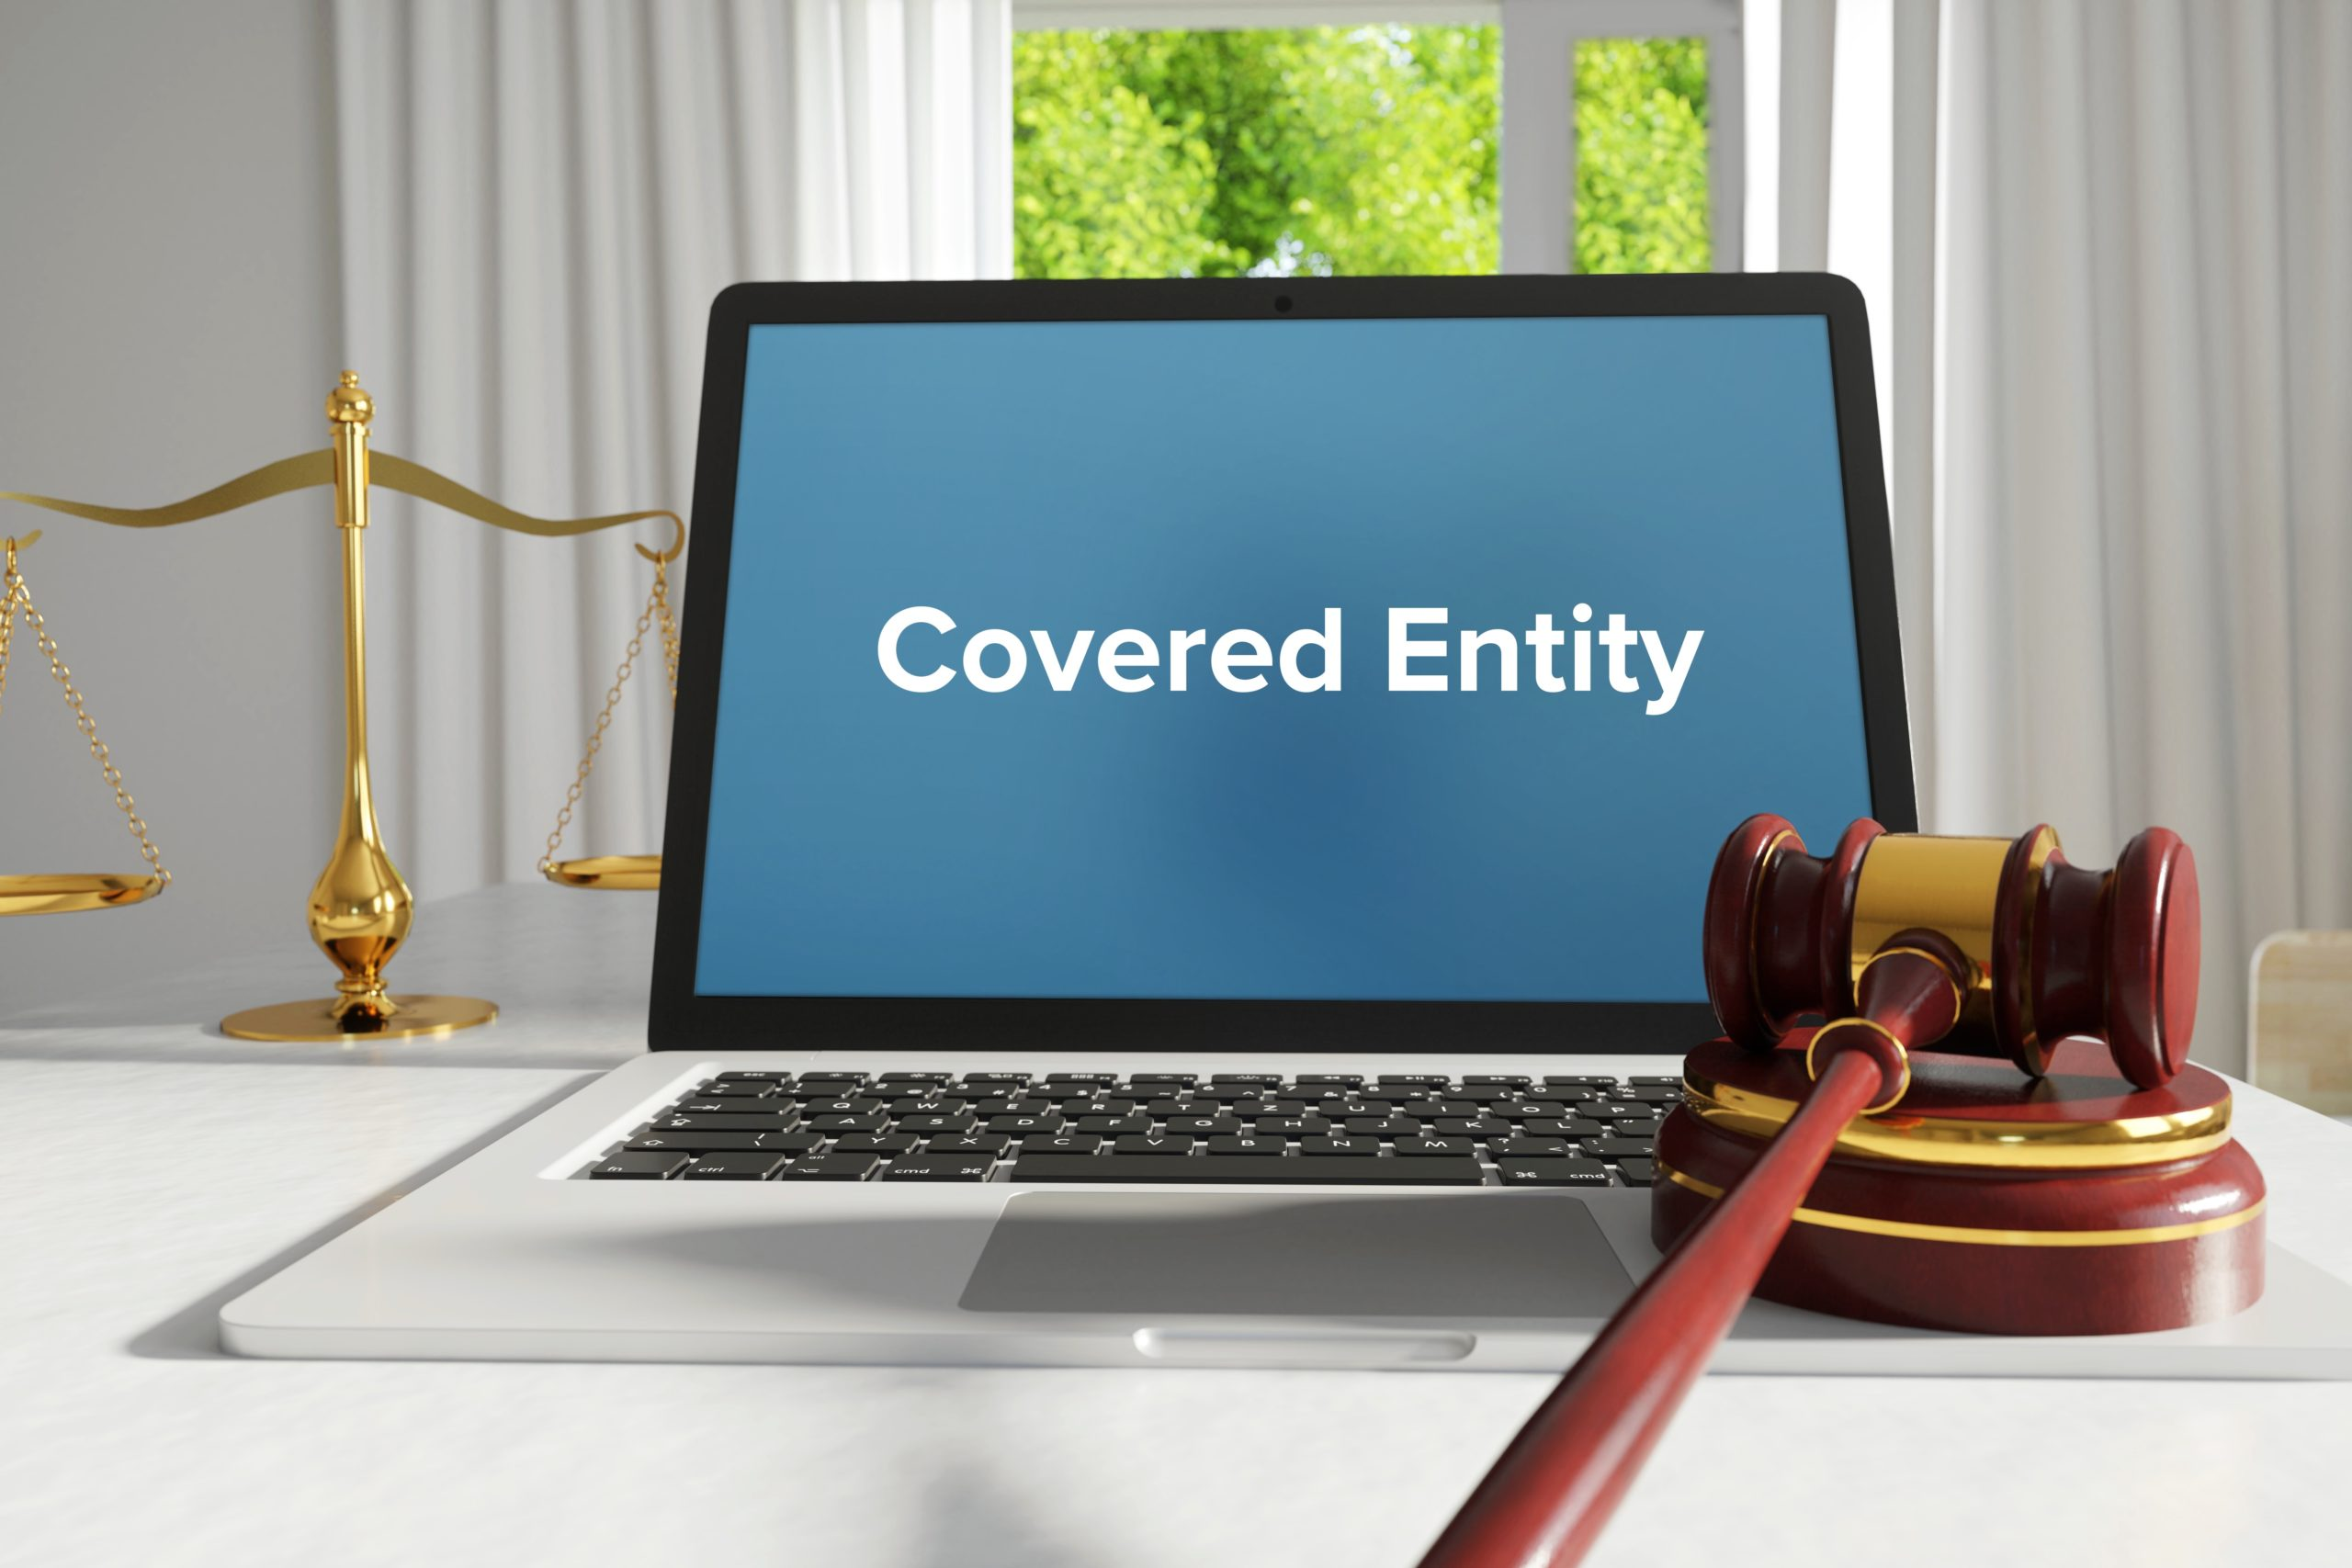 Covered Entity – Law, Judgment, Web. Laptop In The Office With Term On The Screen. Hammer, Libra, Lawyer.